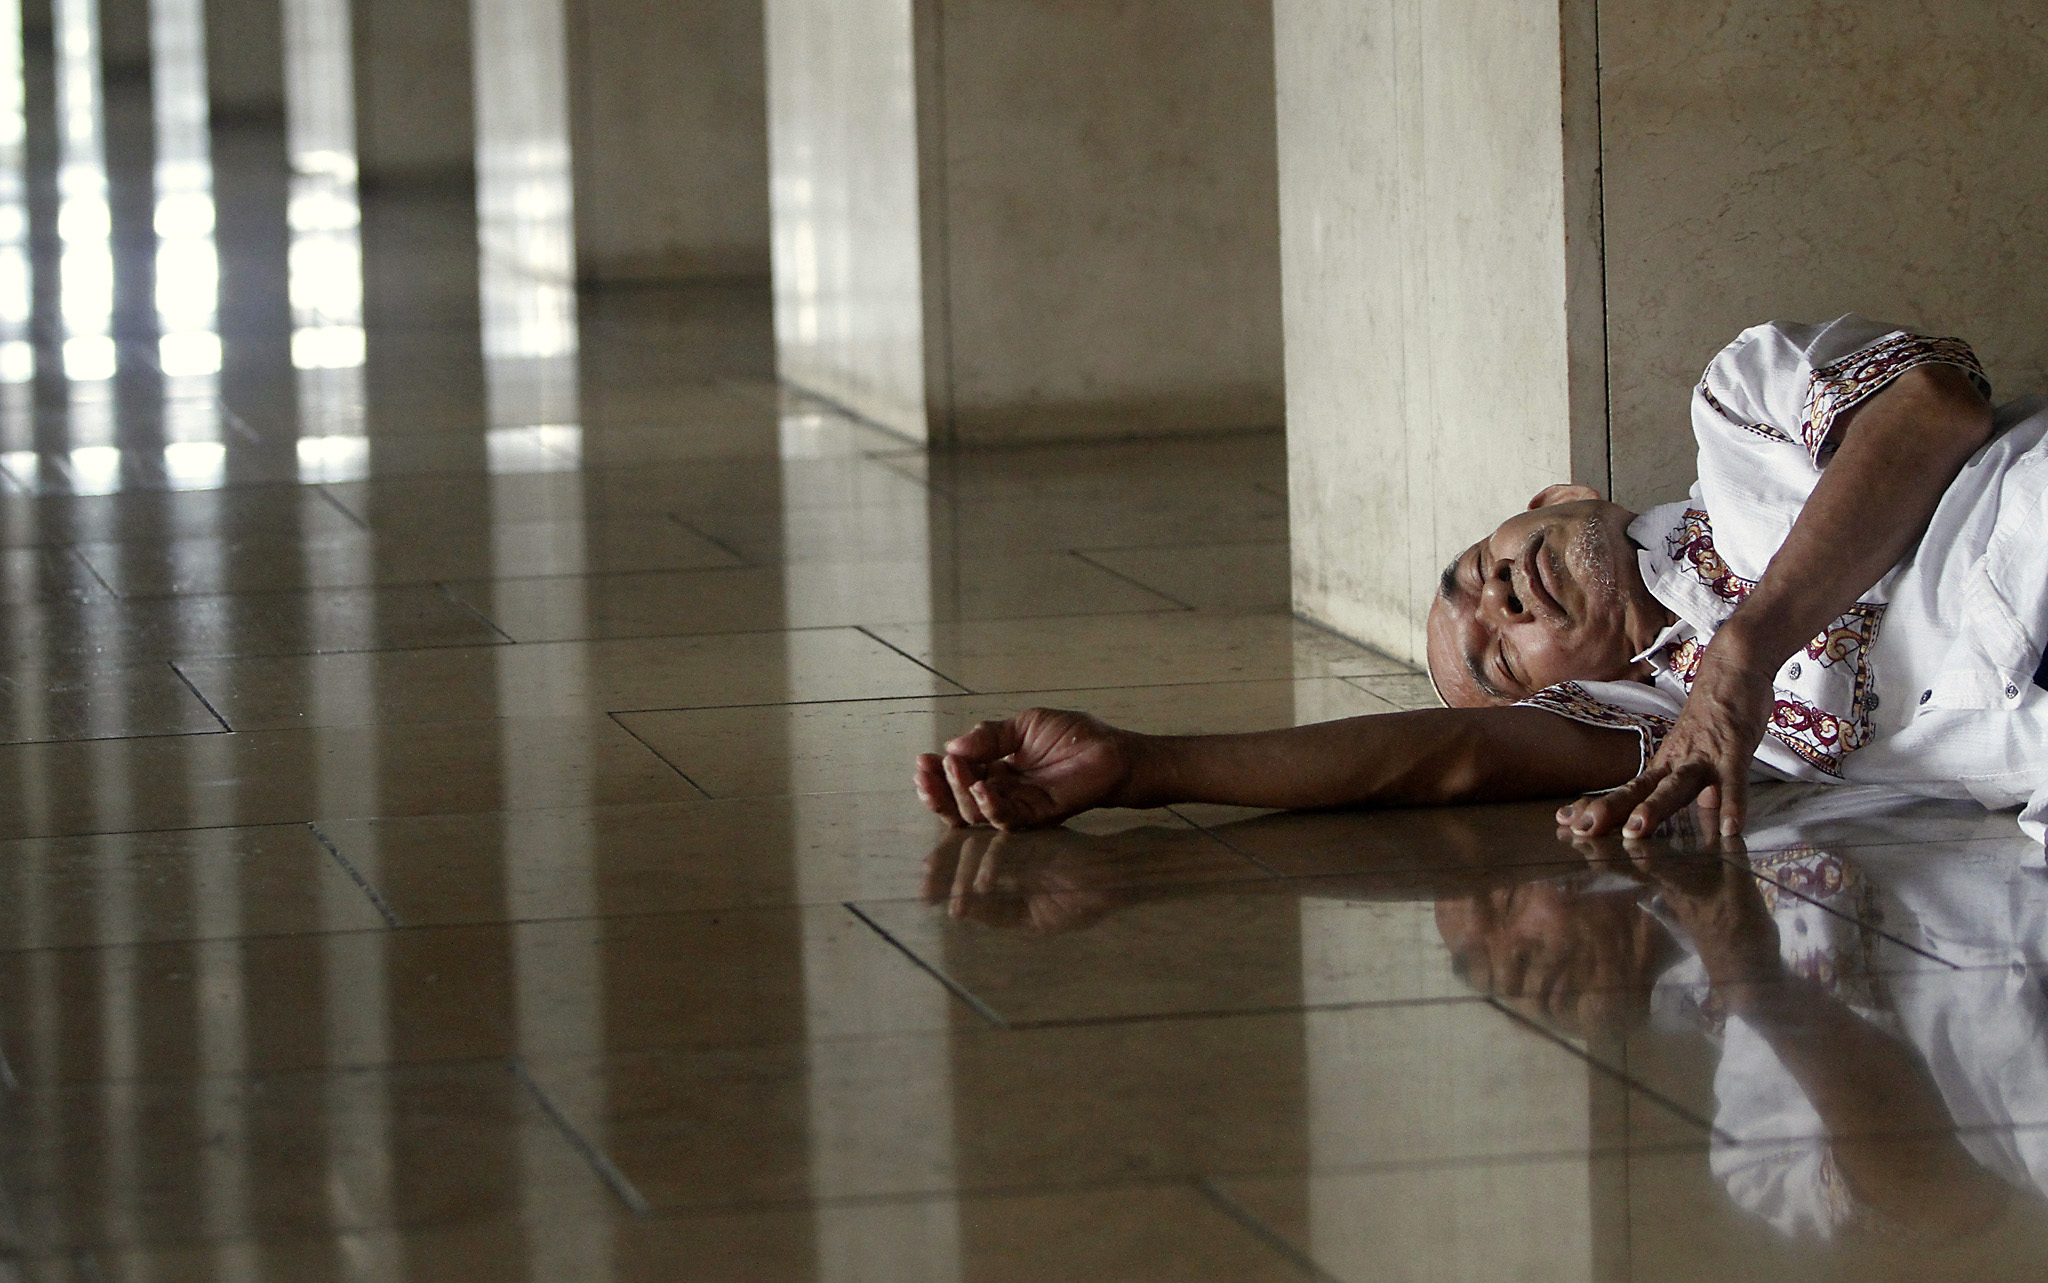 A man rests before attending Friday prayers at Istiqlal Mosque in Jakarta...A man rests before attending Friday prayers at Istiqlal Mosque in Jakarta, Indonesia March 18, 2016. REUTERS/Garry Lotulung